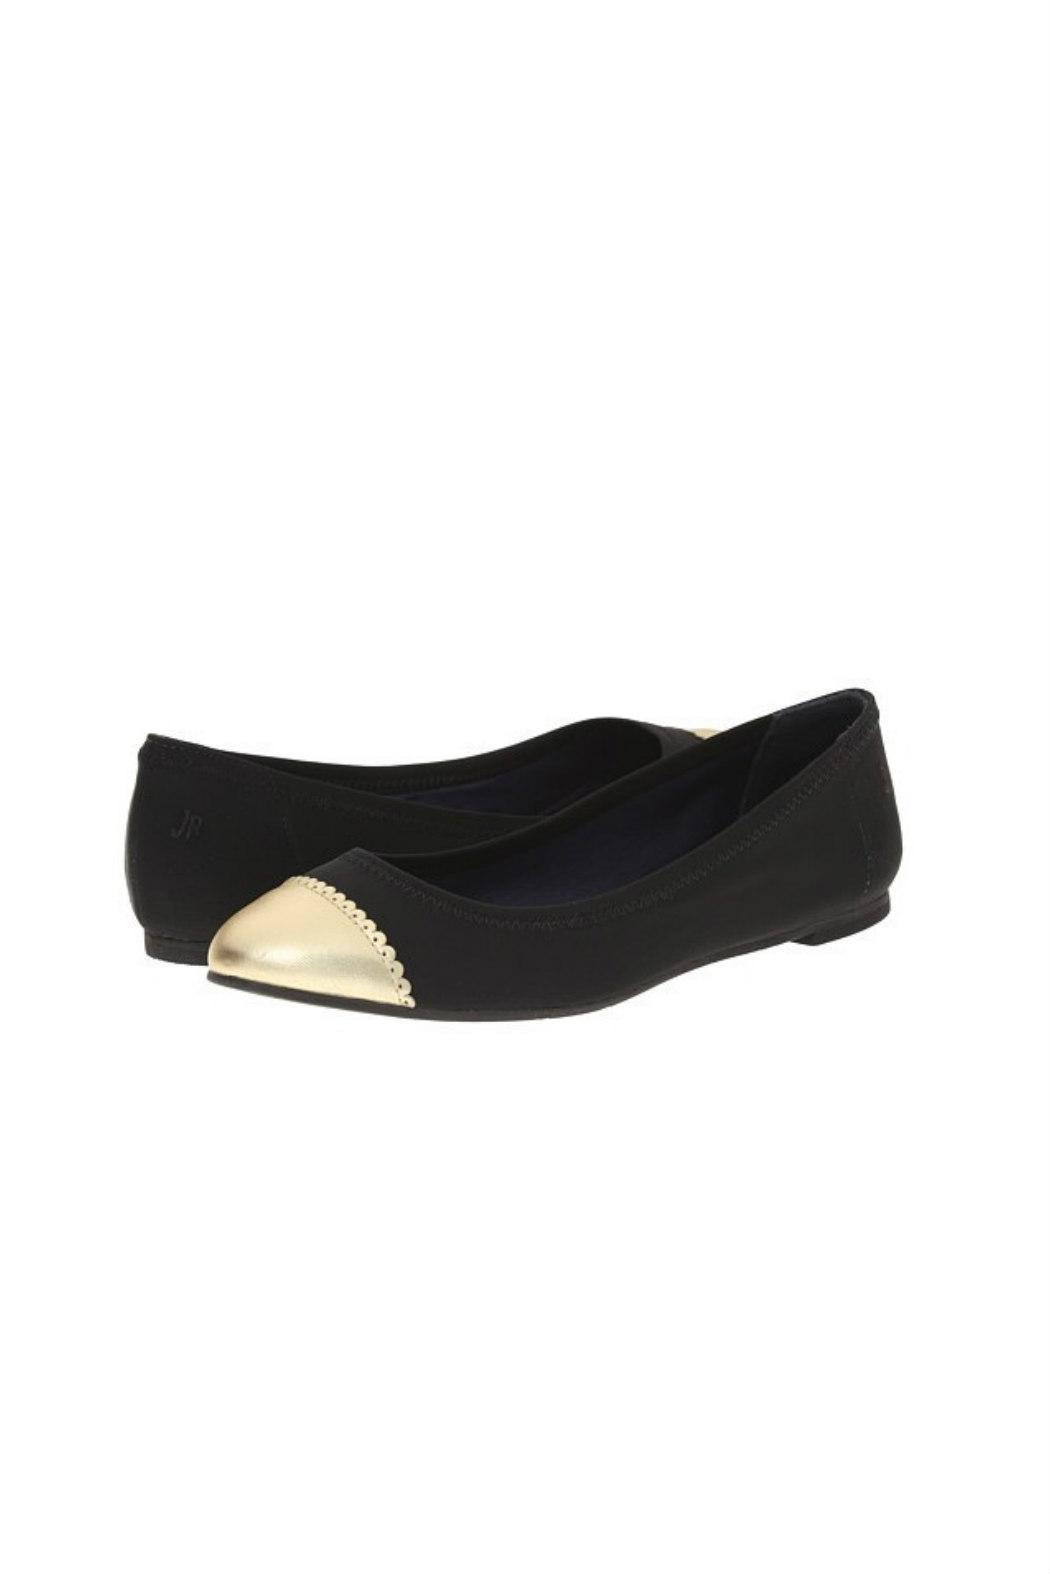 Jack Rogers Bree Stretch Flat - Front Full Image